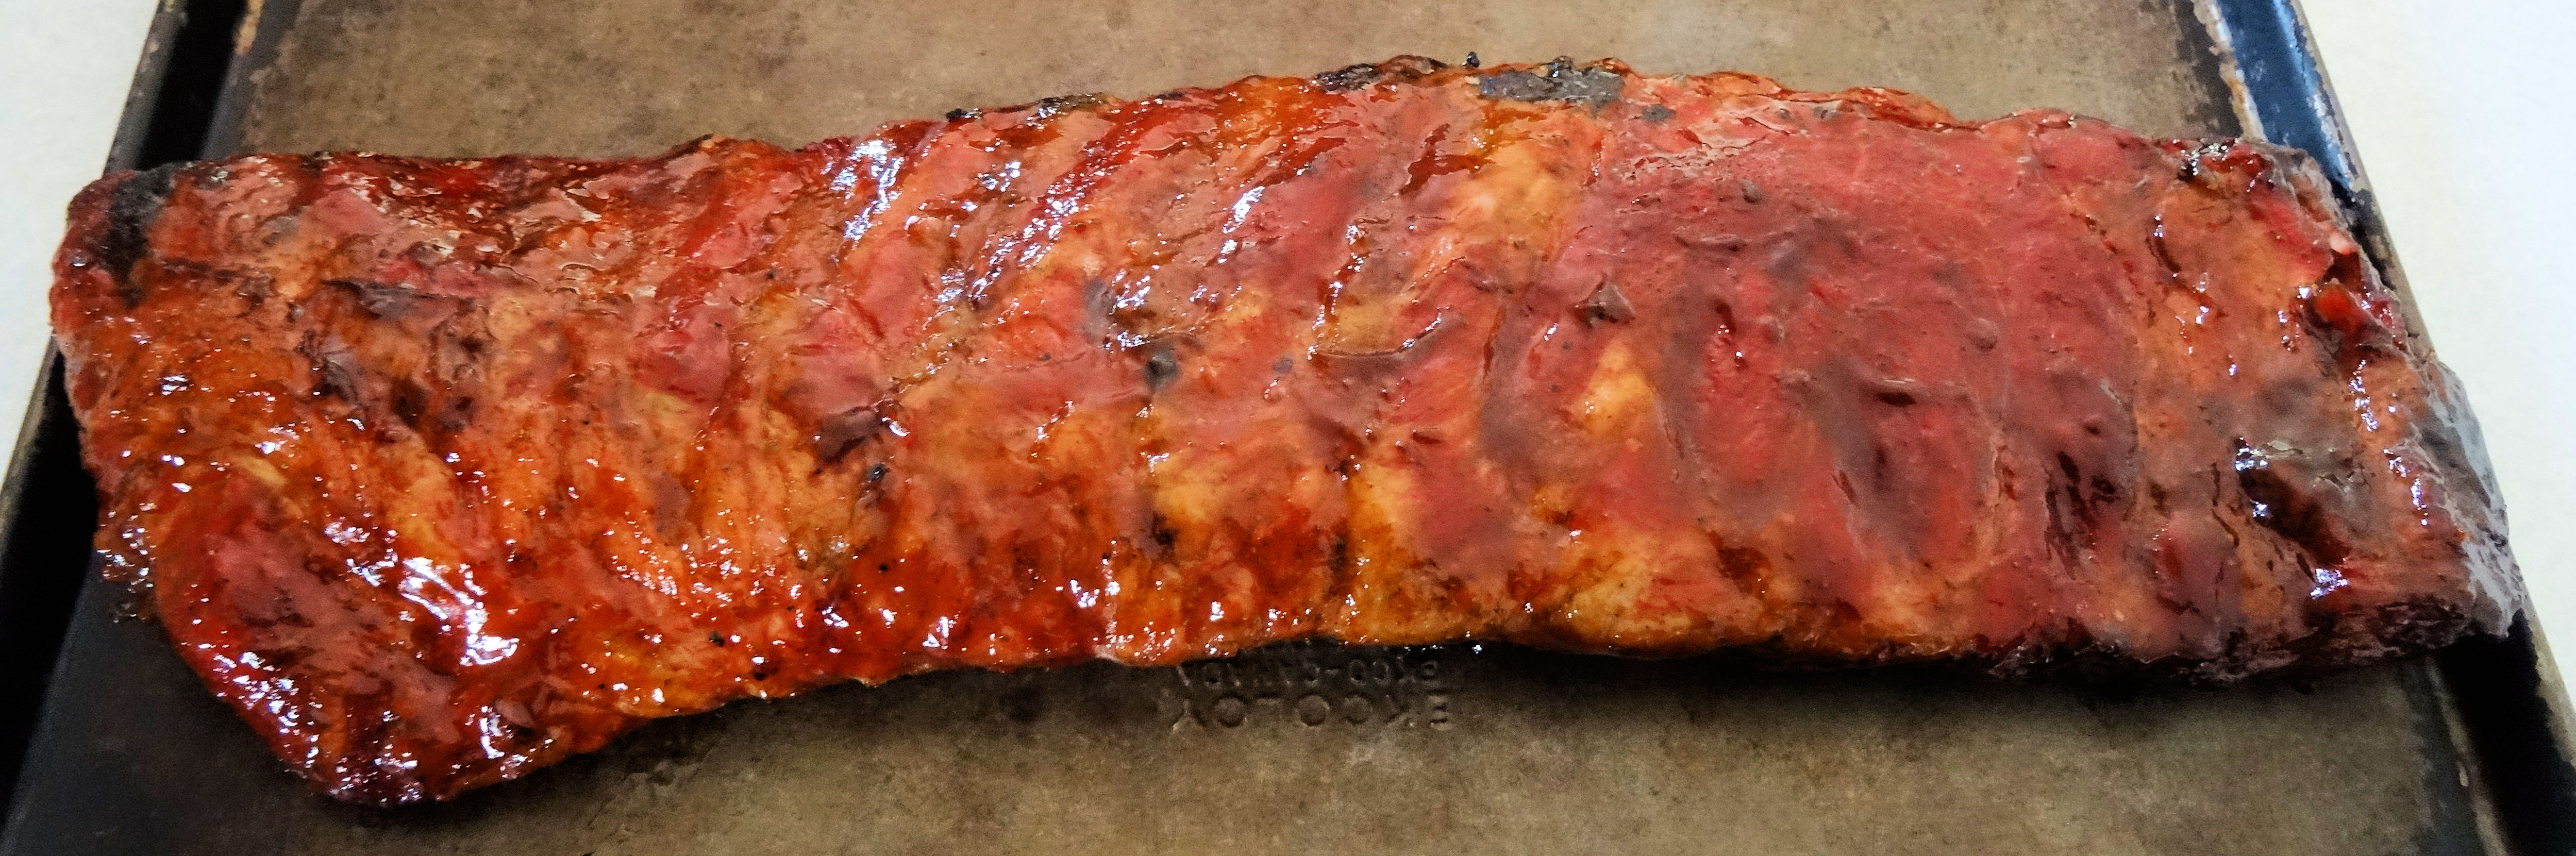 Maple Glazed Ribs 3